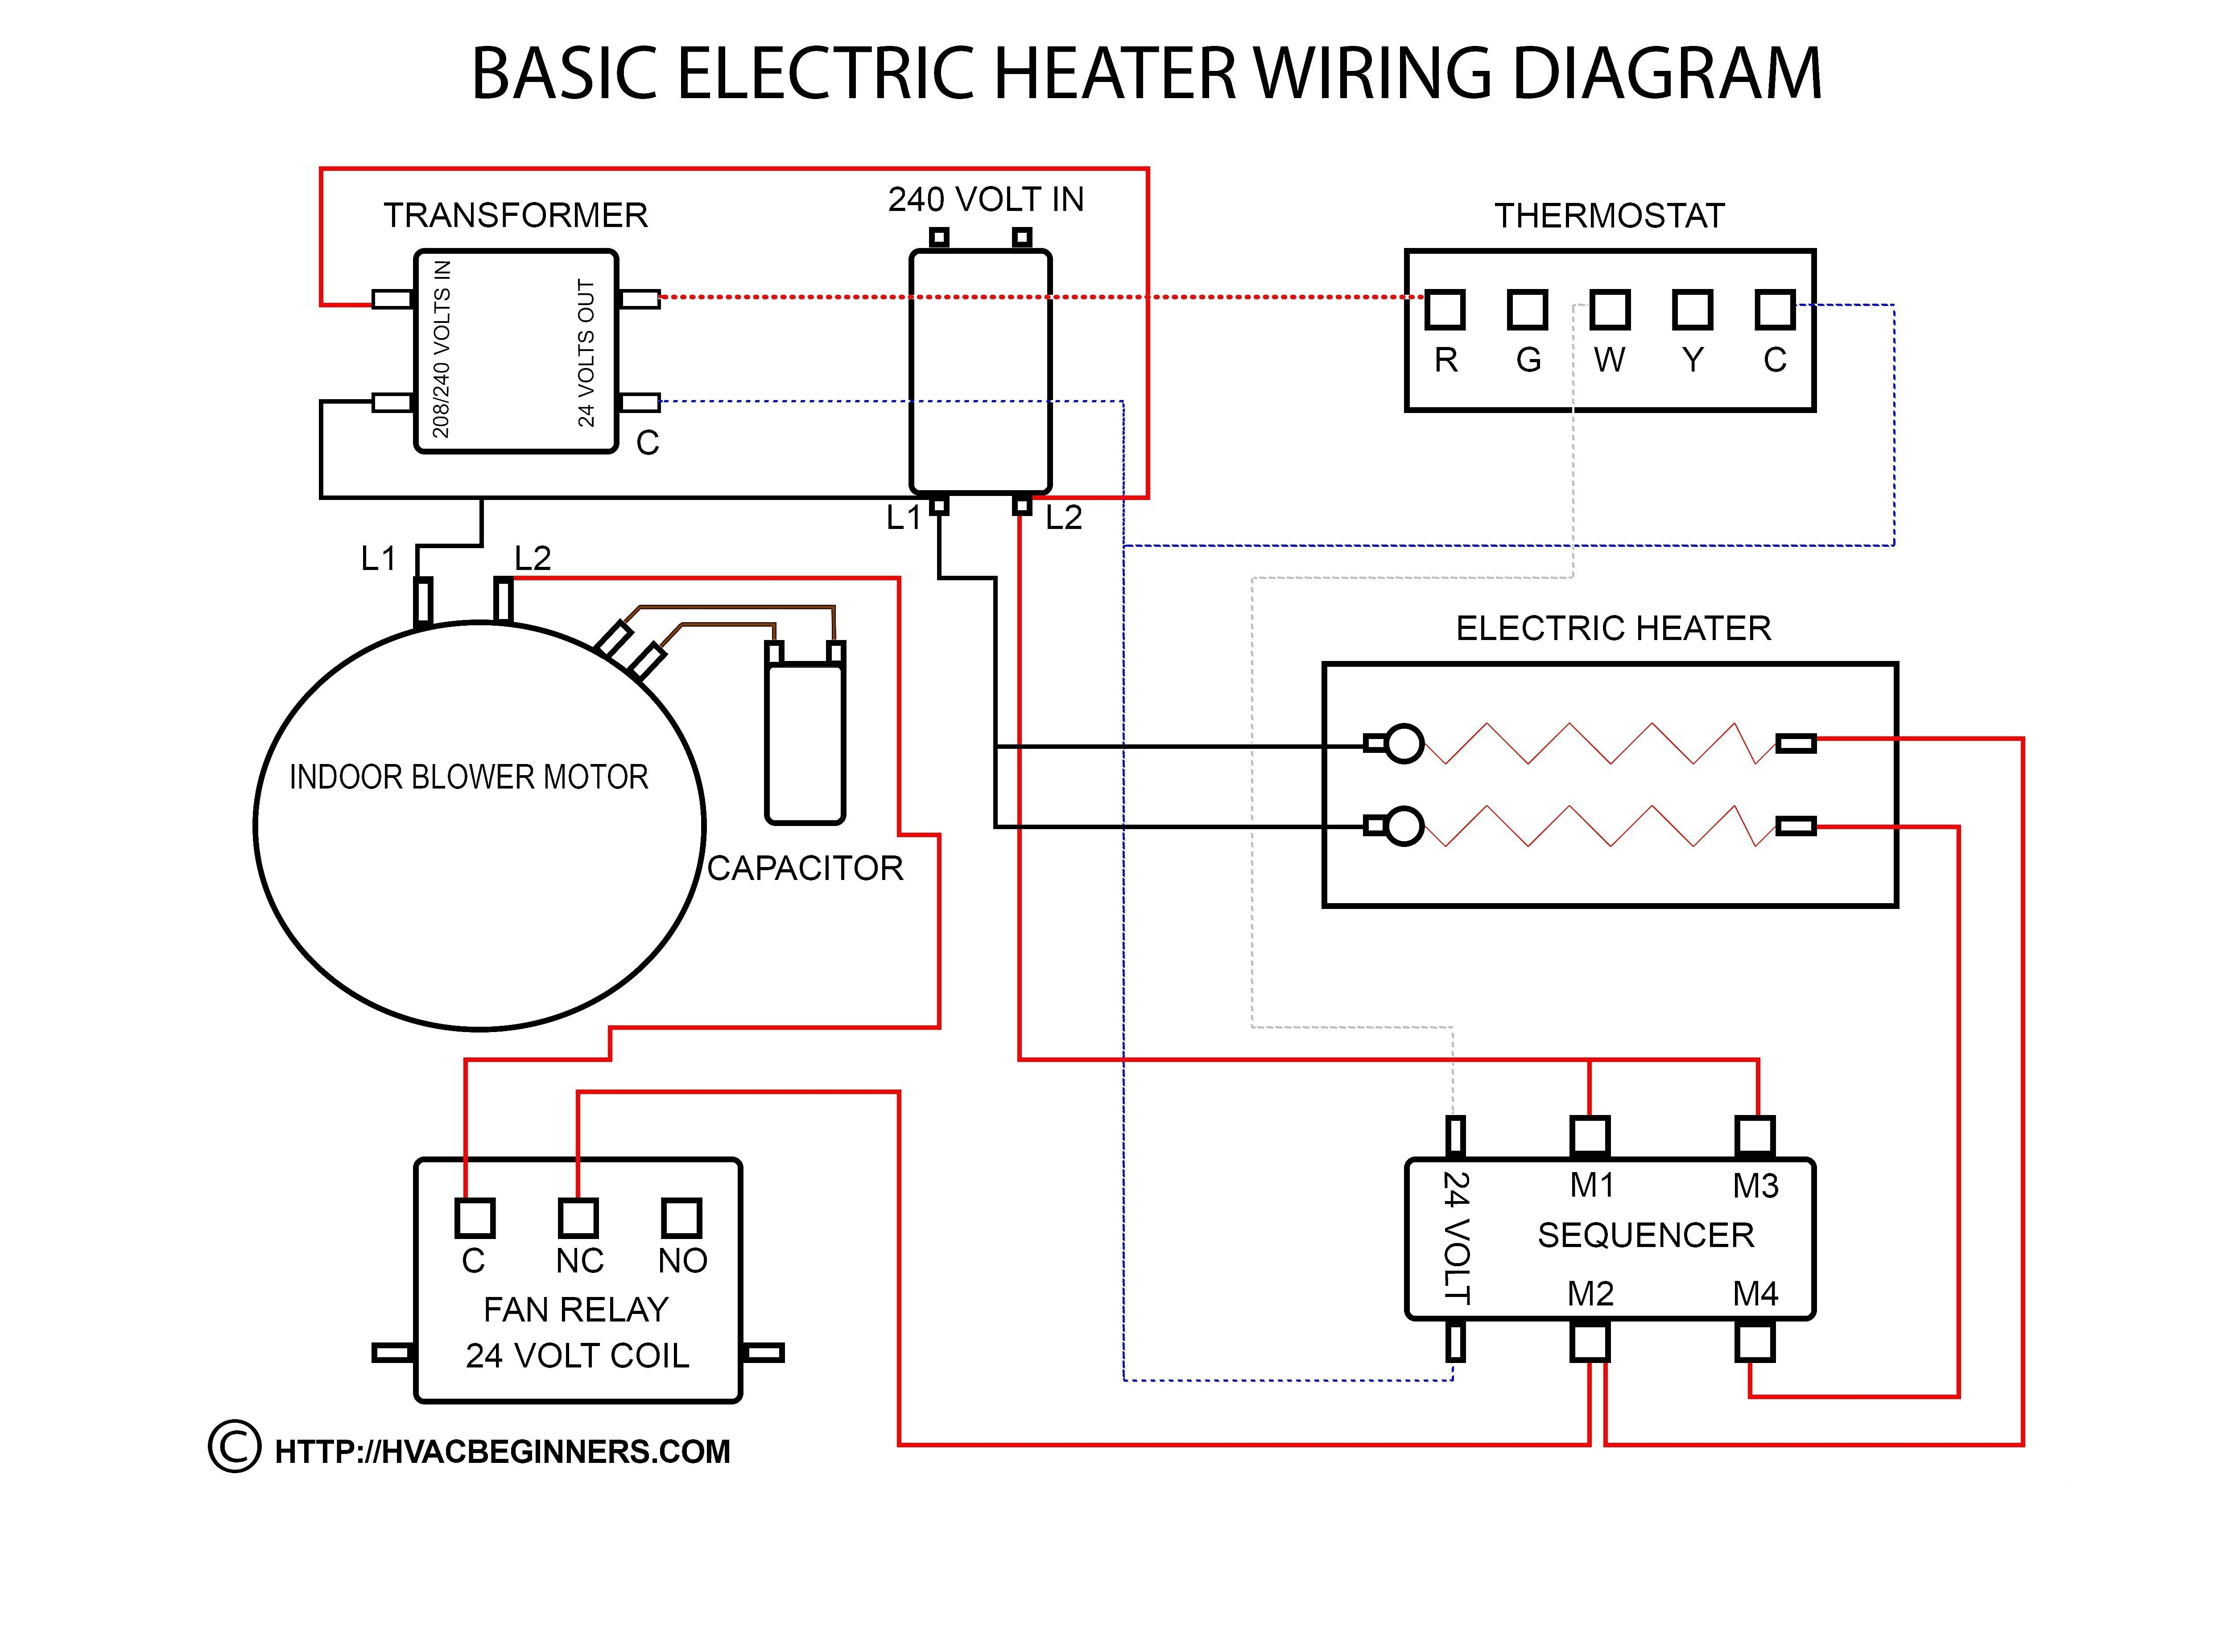 Fasco D721 Wiring Diagram - Wiring Diagram Features on